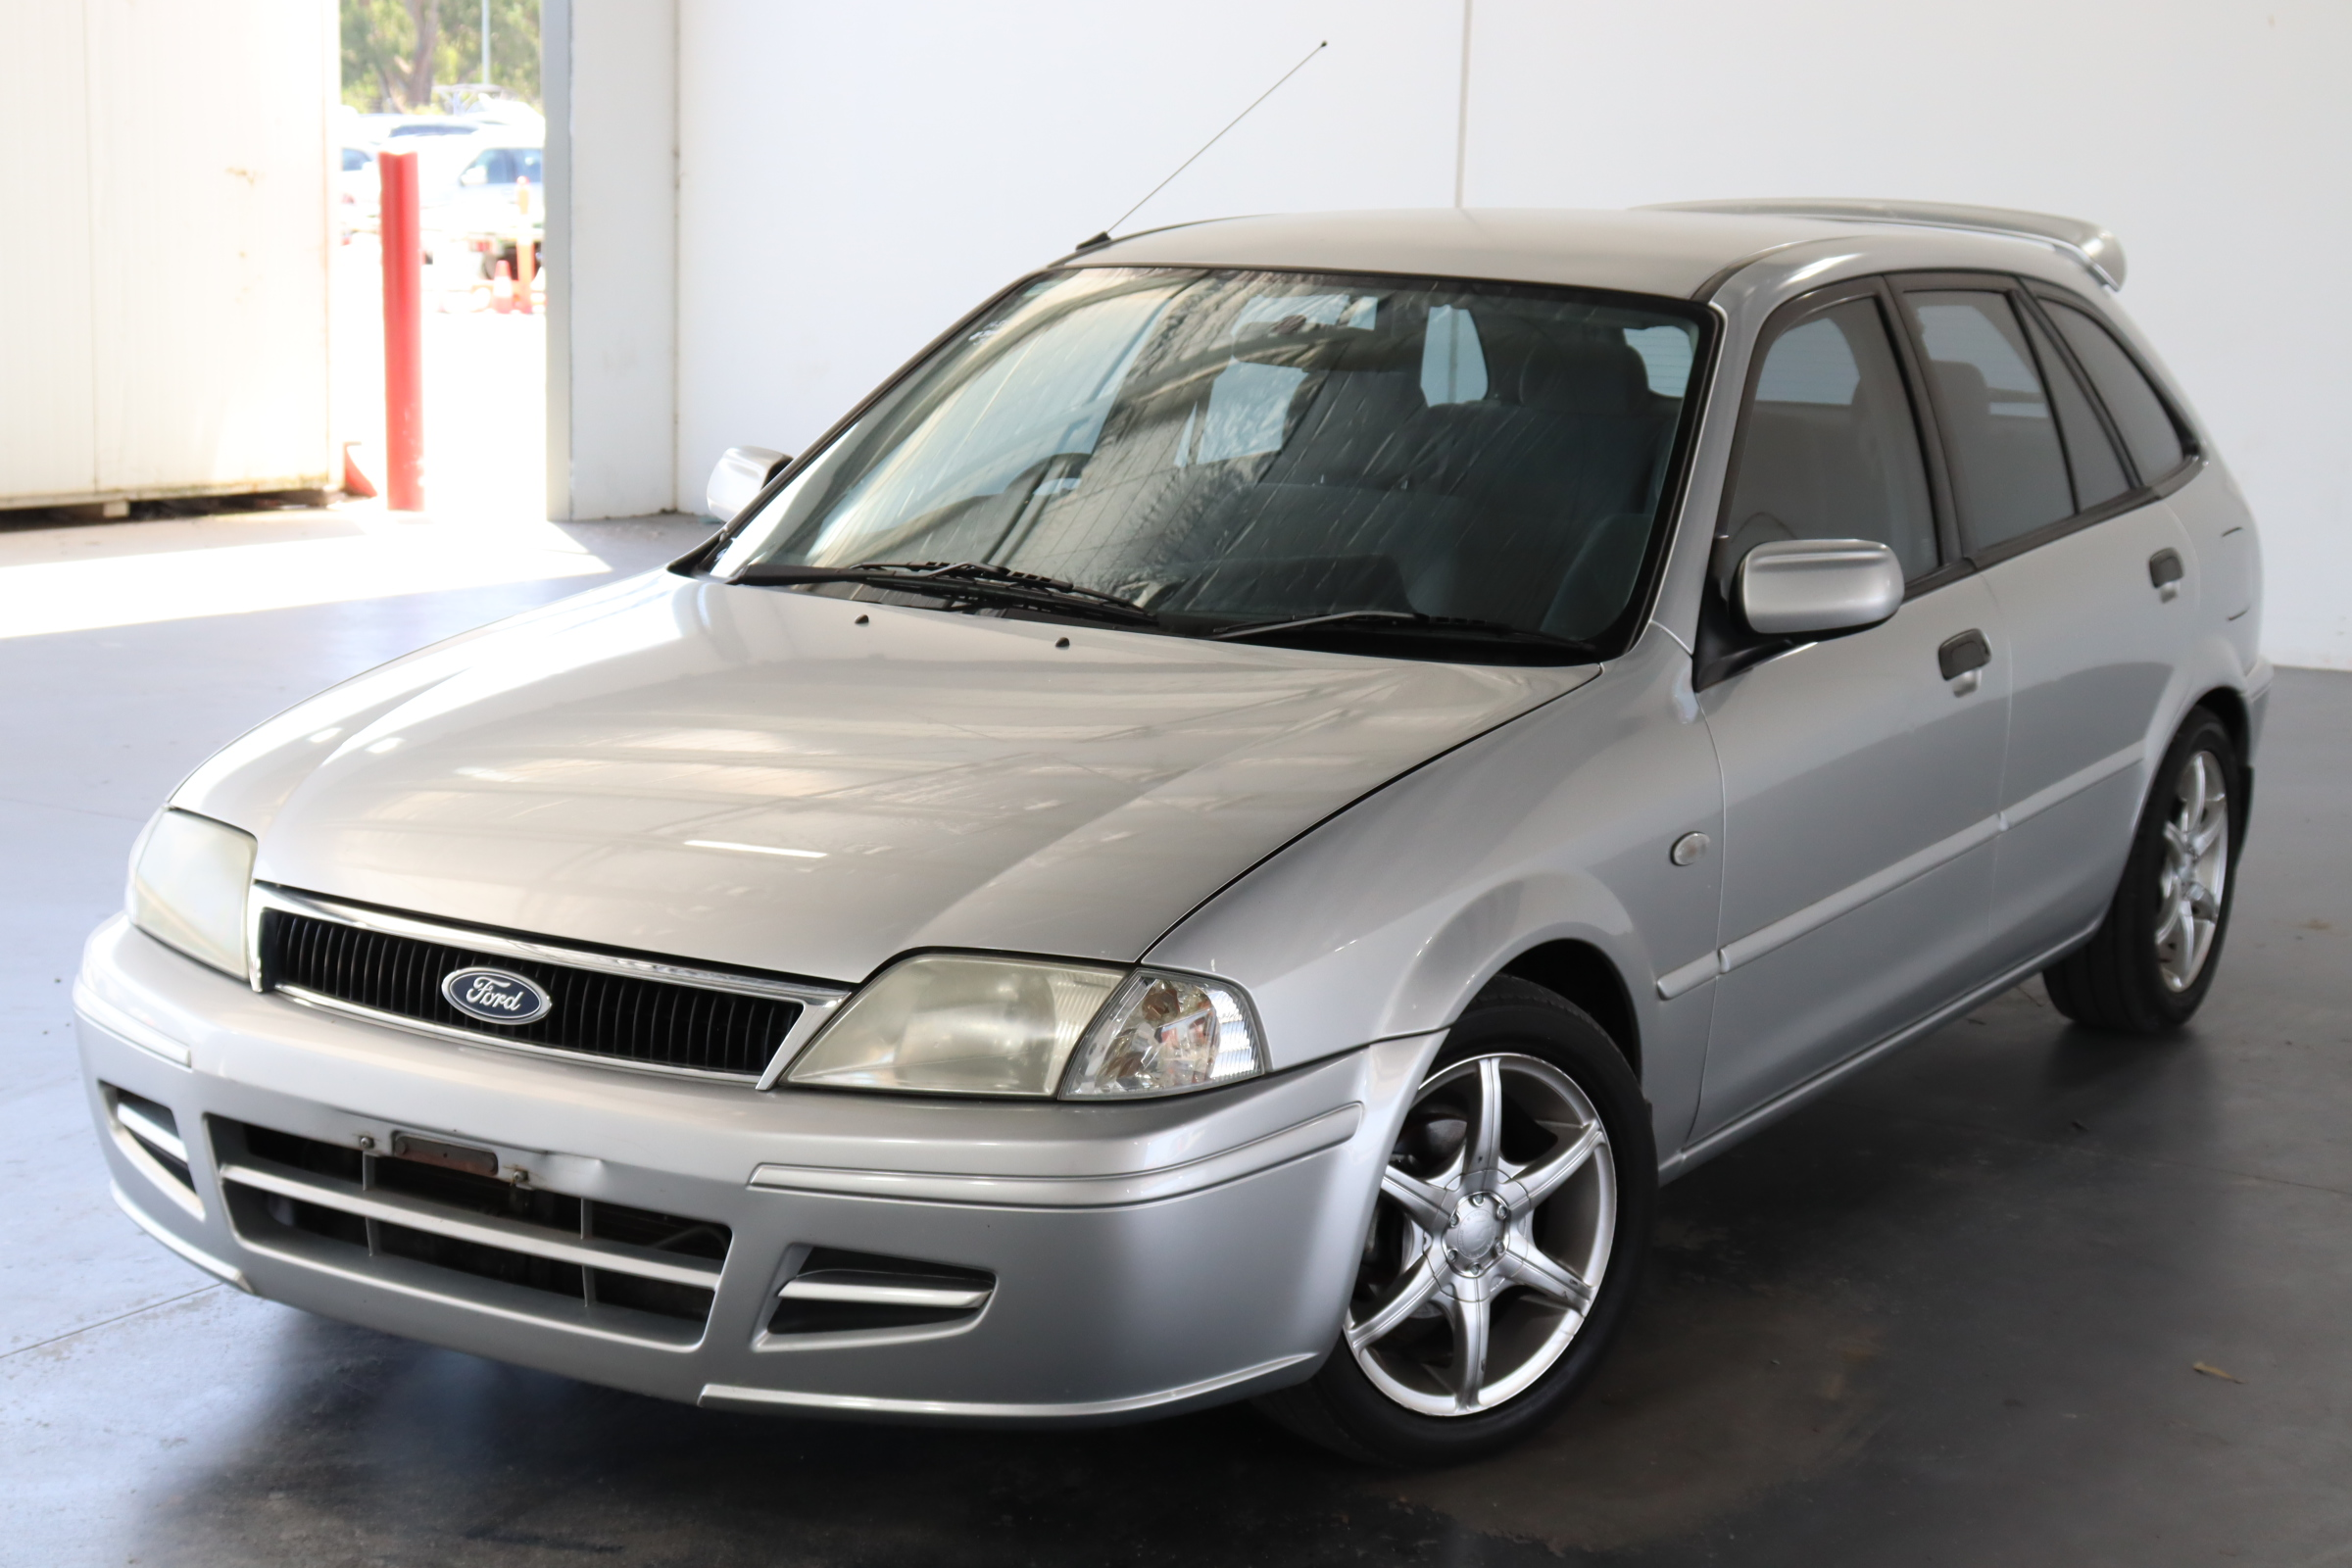 2001 Ford Laser LXi KQ Automatic Hatchback